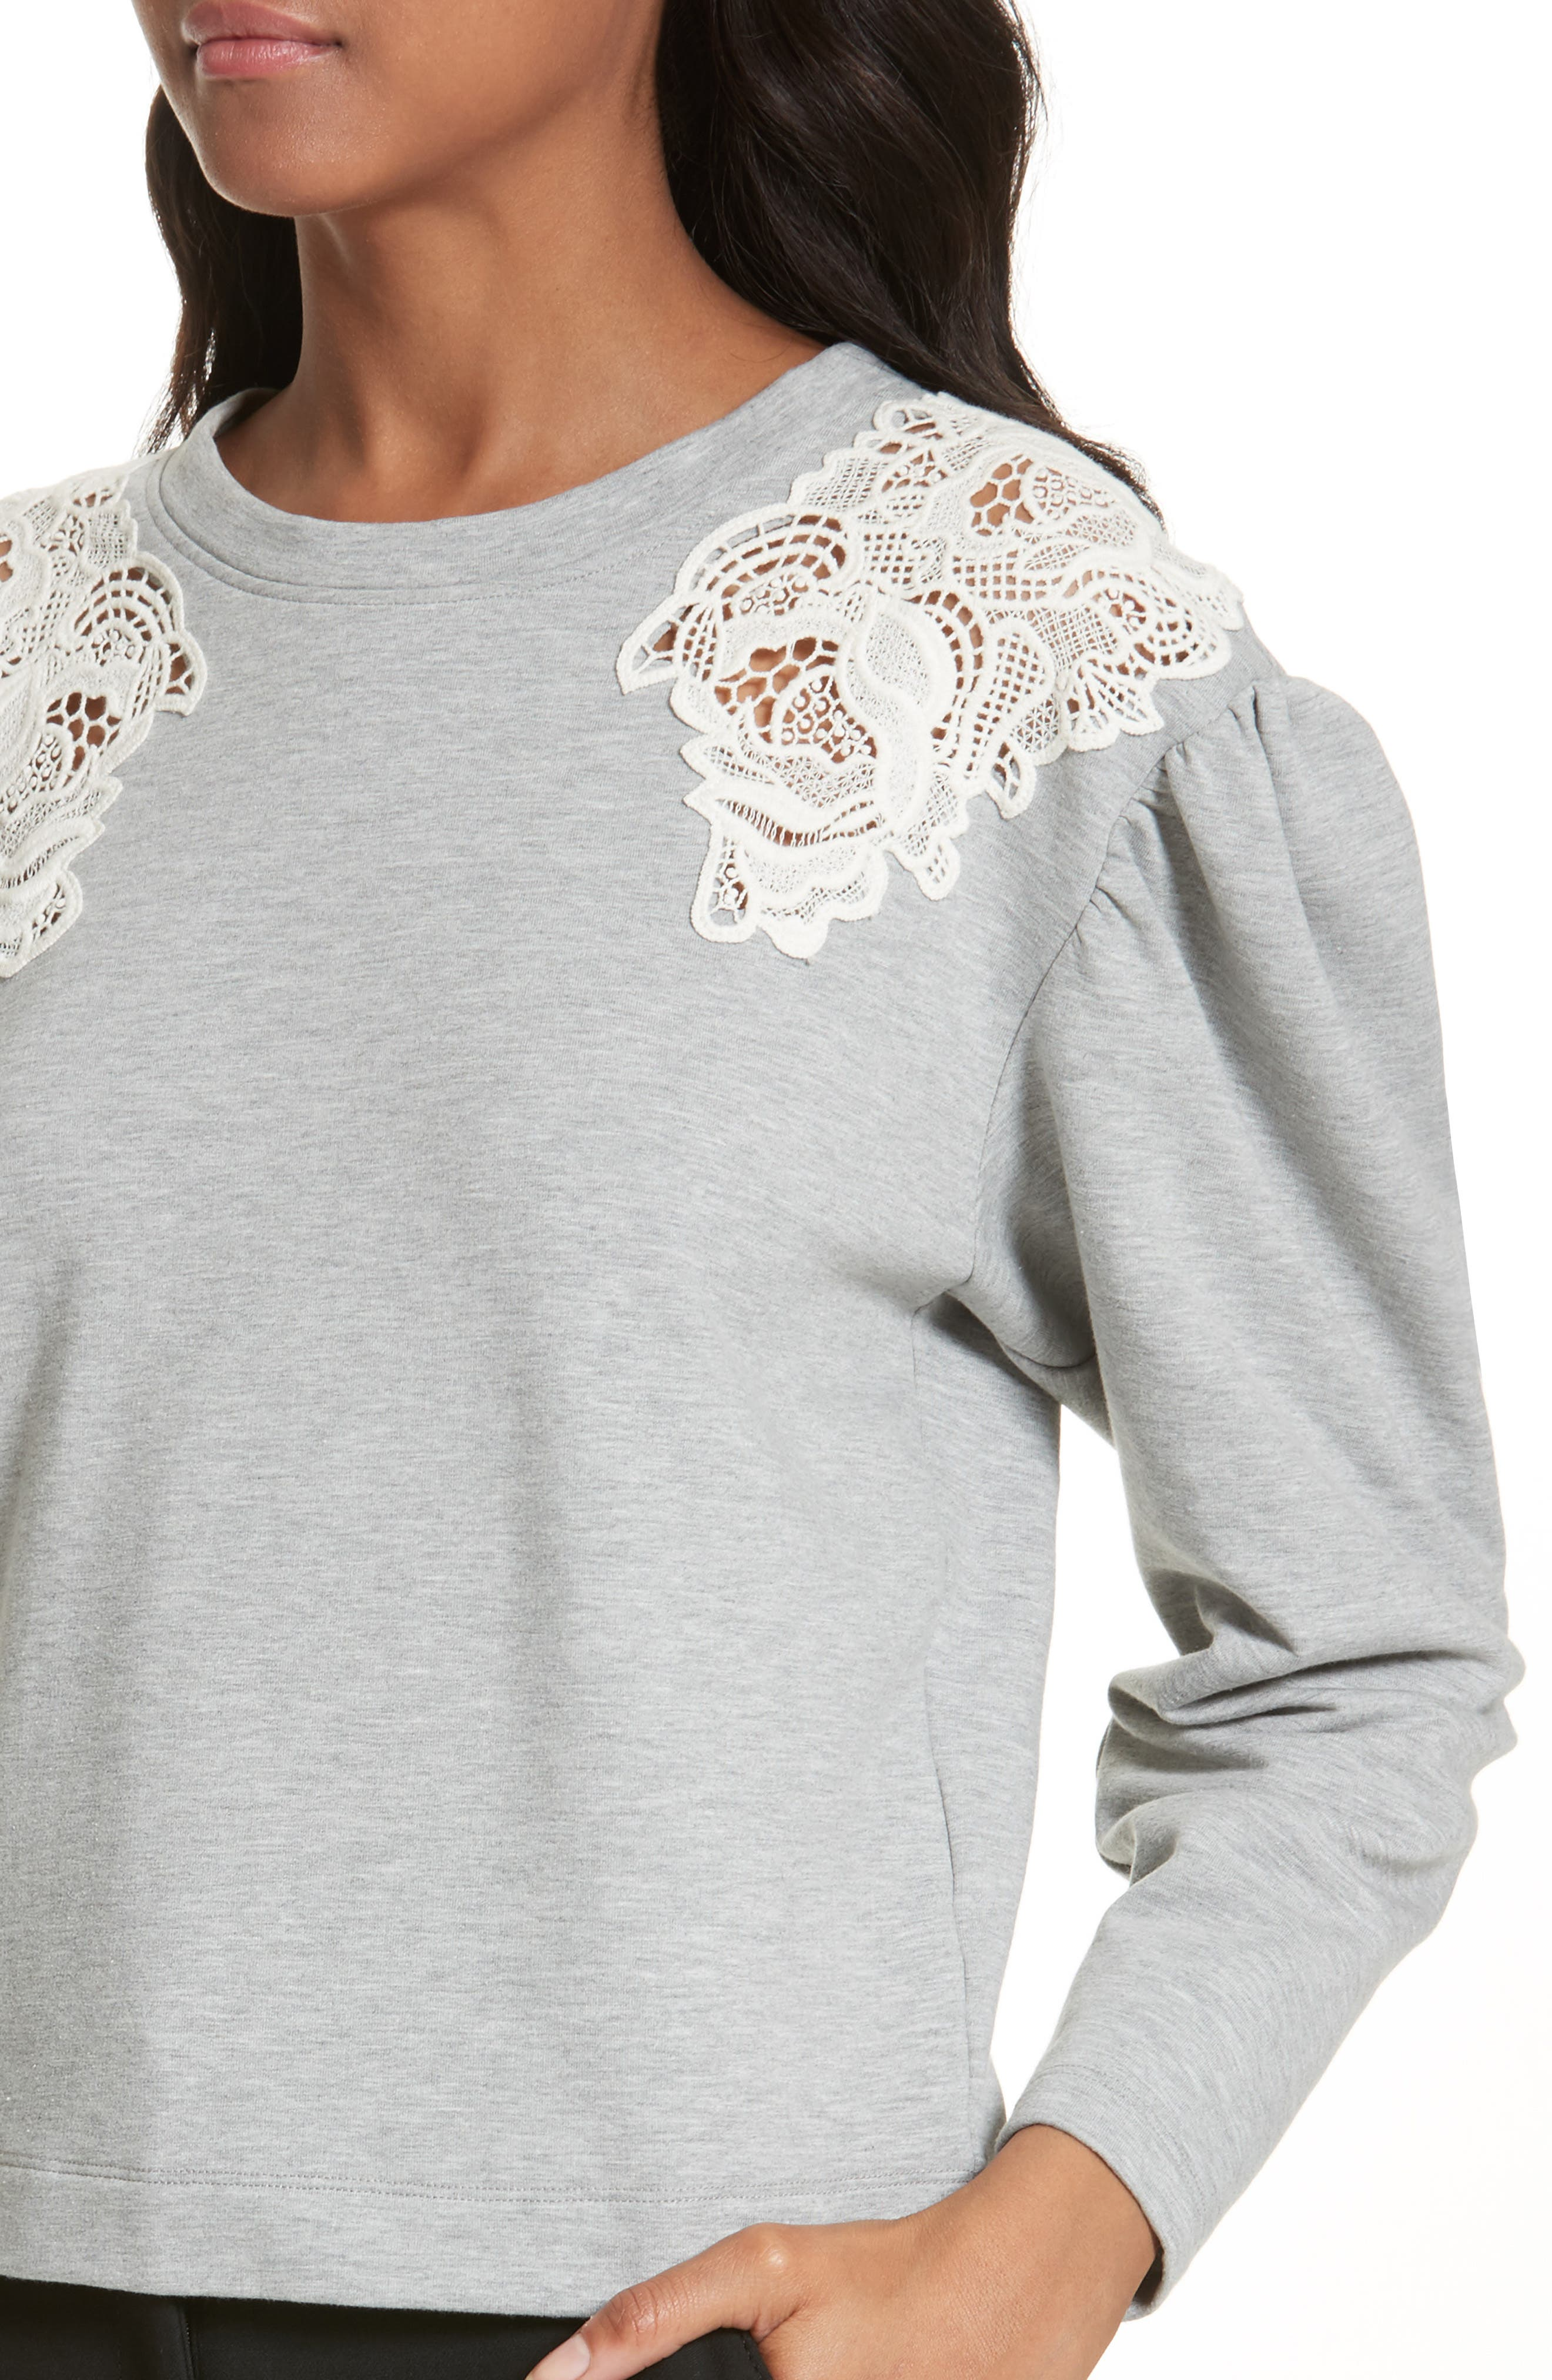 Lace Inset Sweatshirt,                             Alternate thumbnail 4, color,                             021